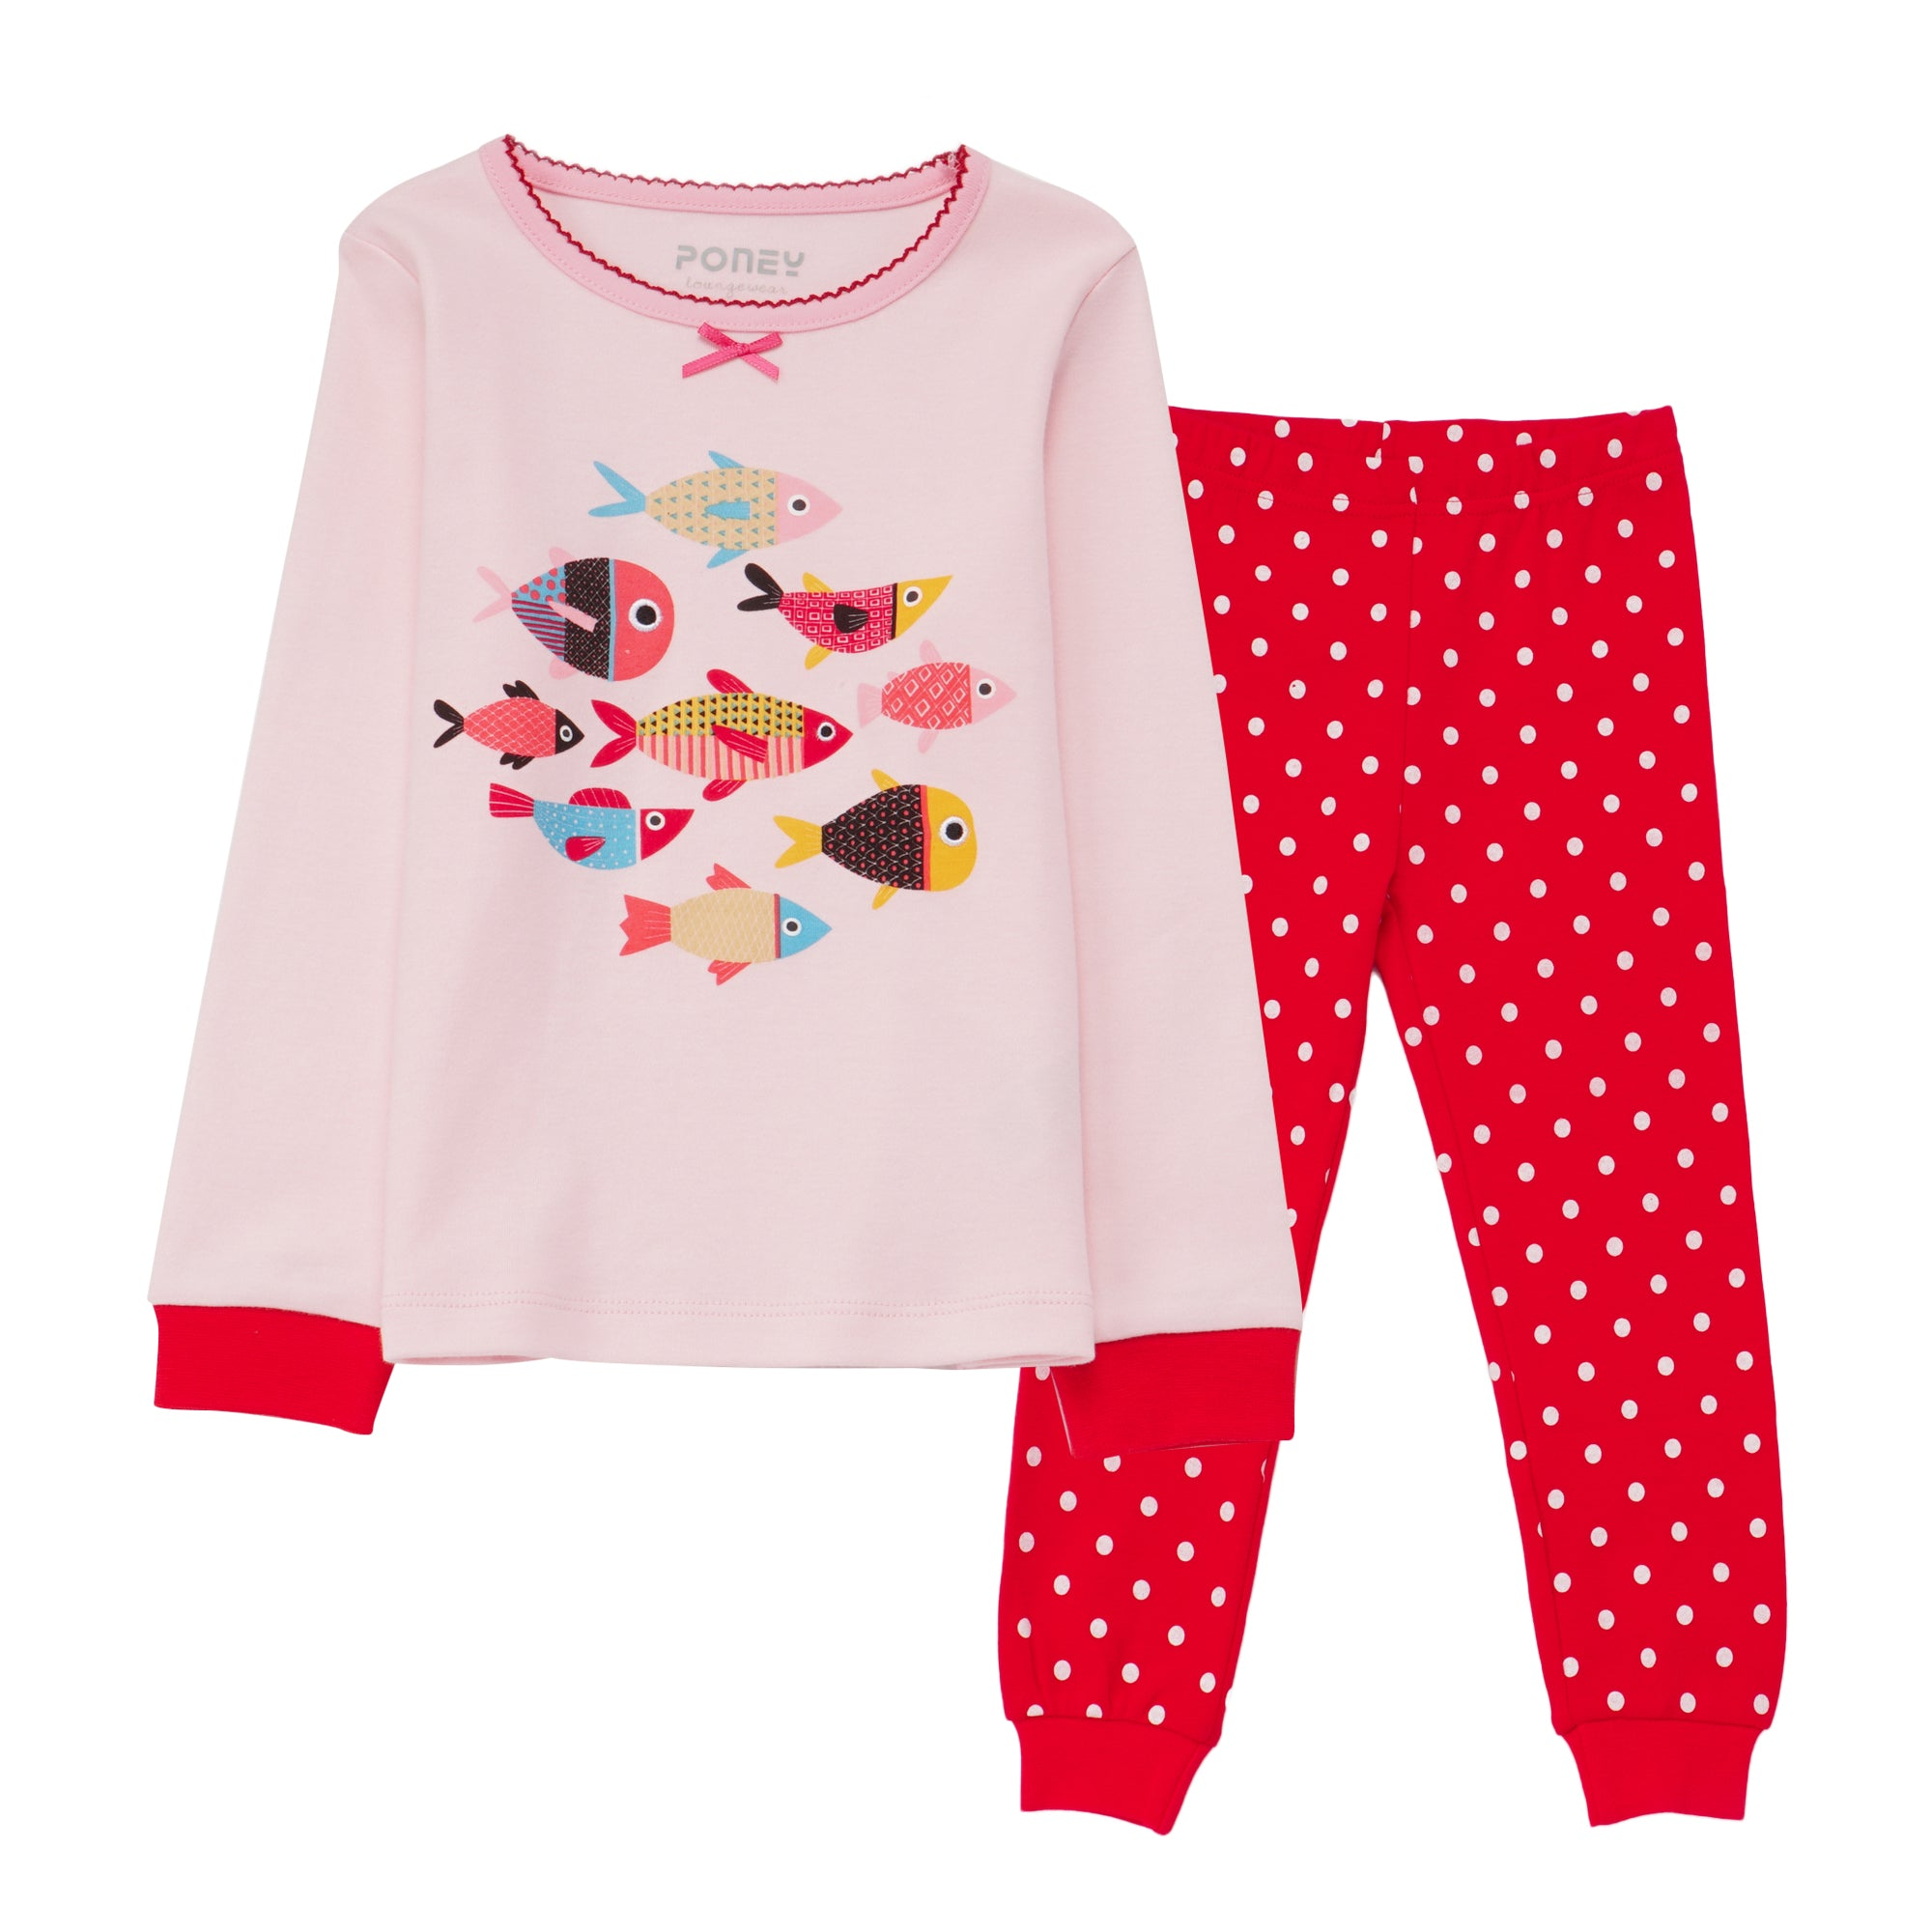 Girls Pink Pyjamas PLG10